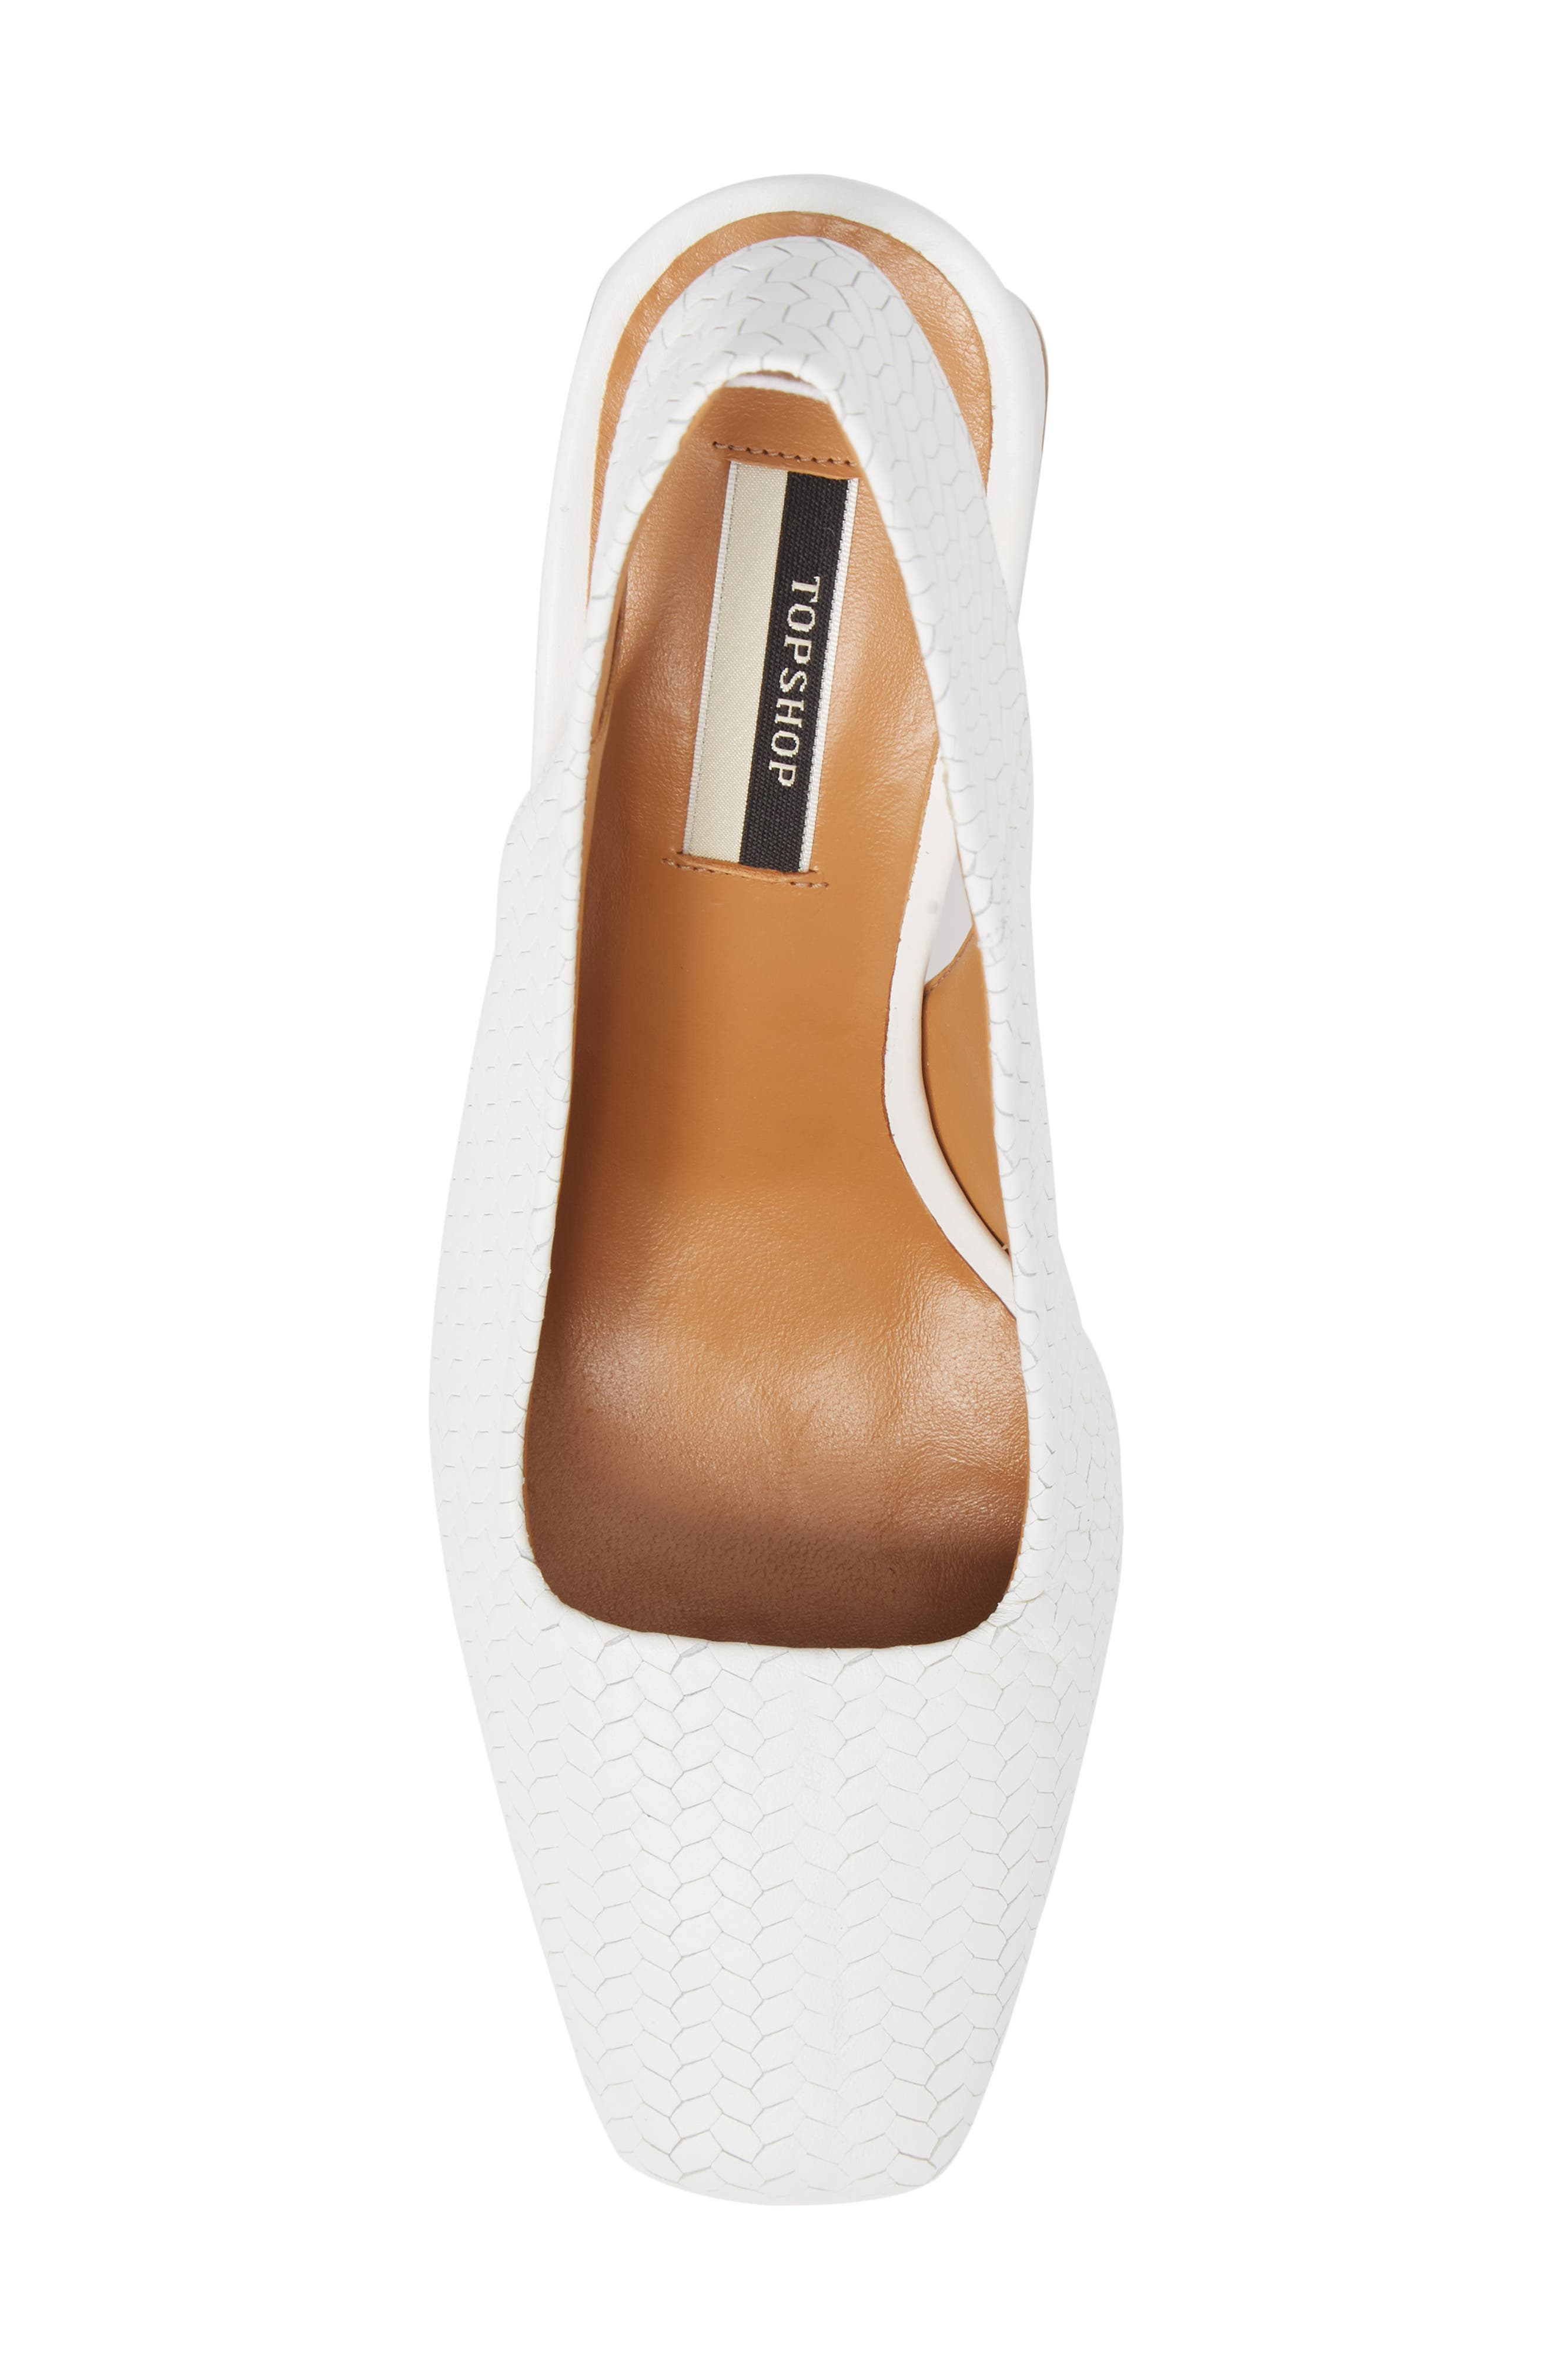 Gainor Block Heel Slingback Pump,                             Alternate thumbnail 5, color,                             White